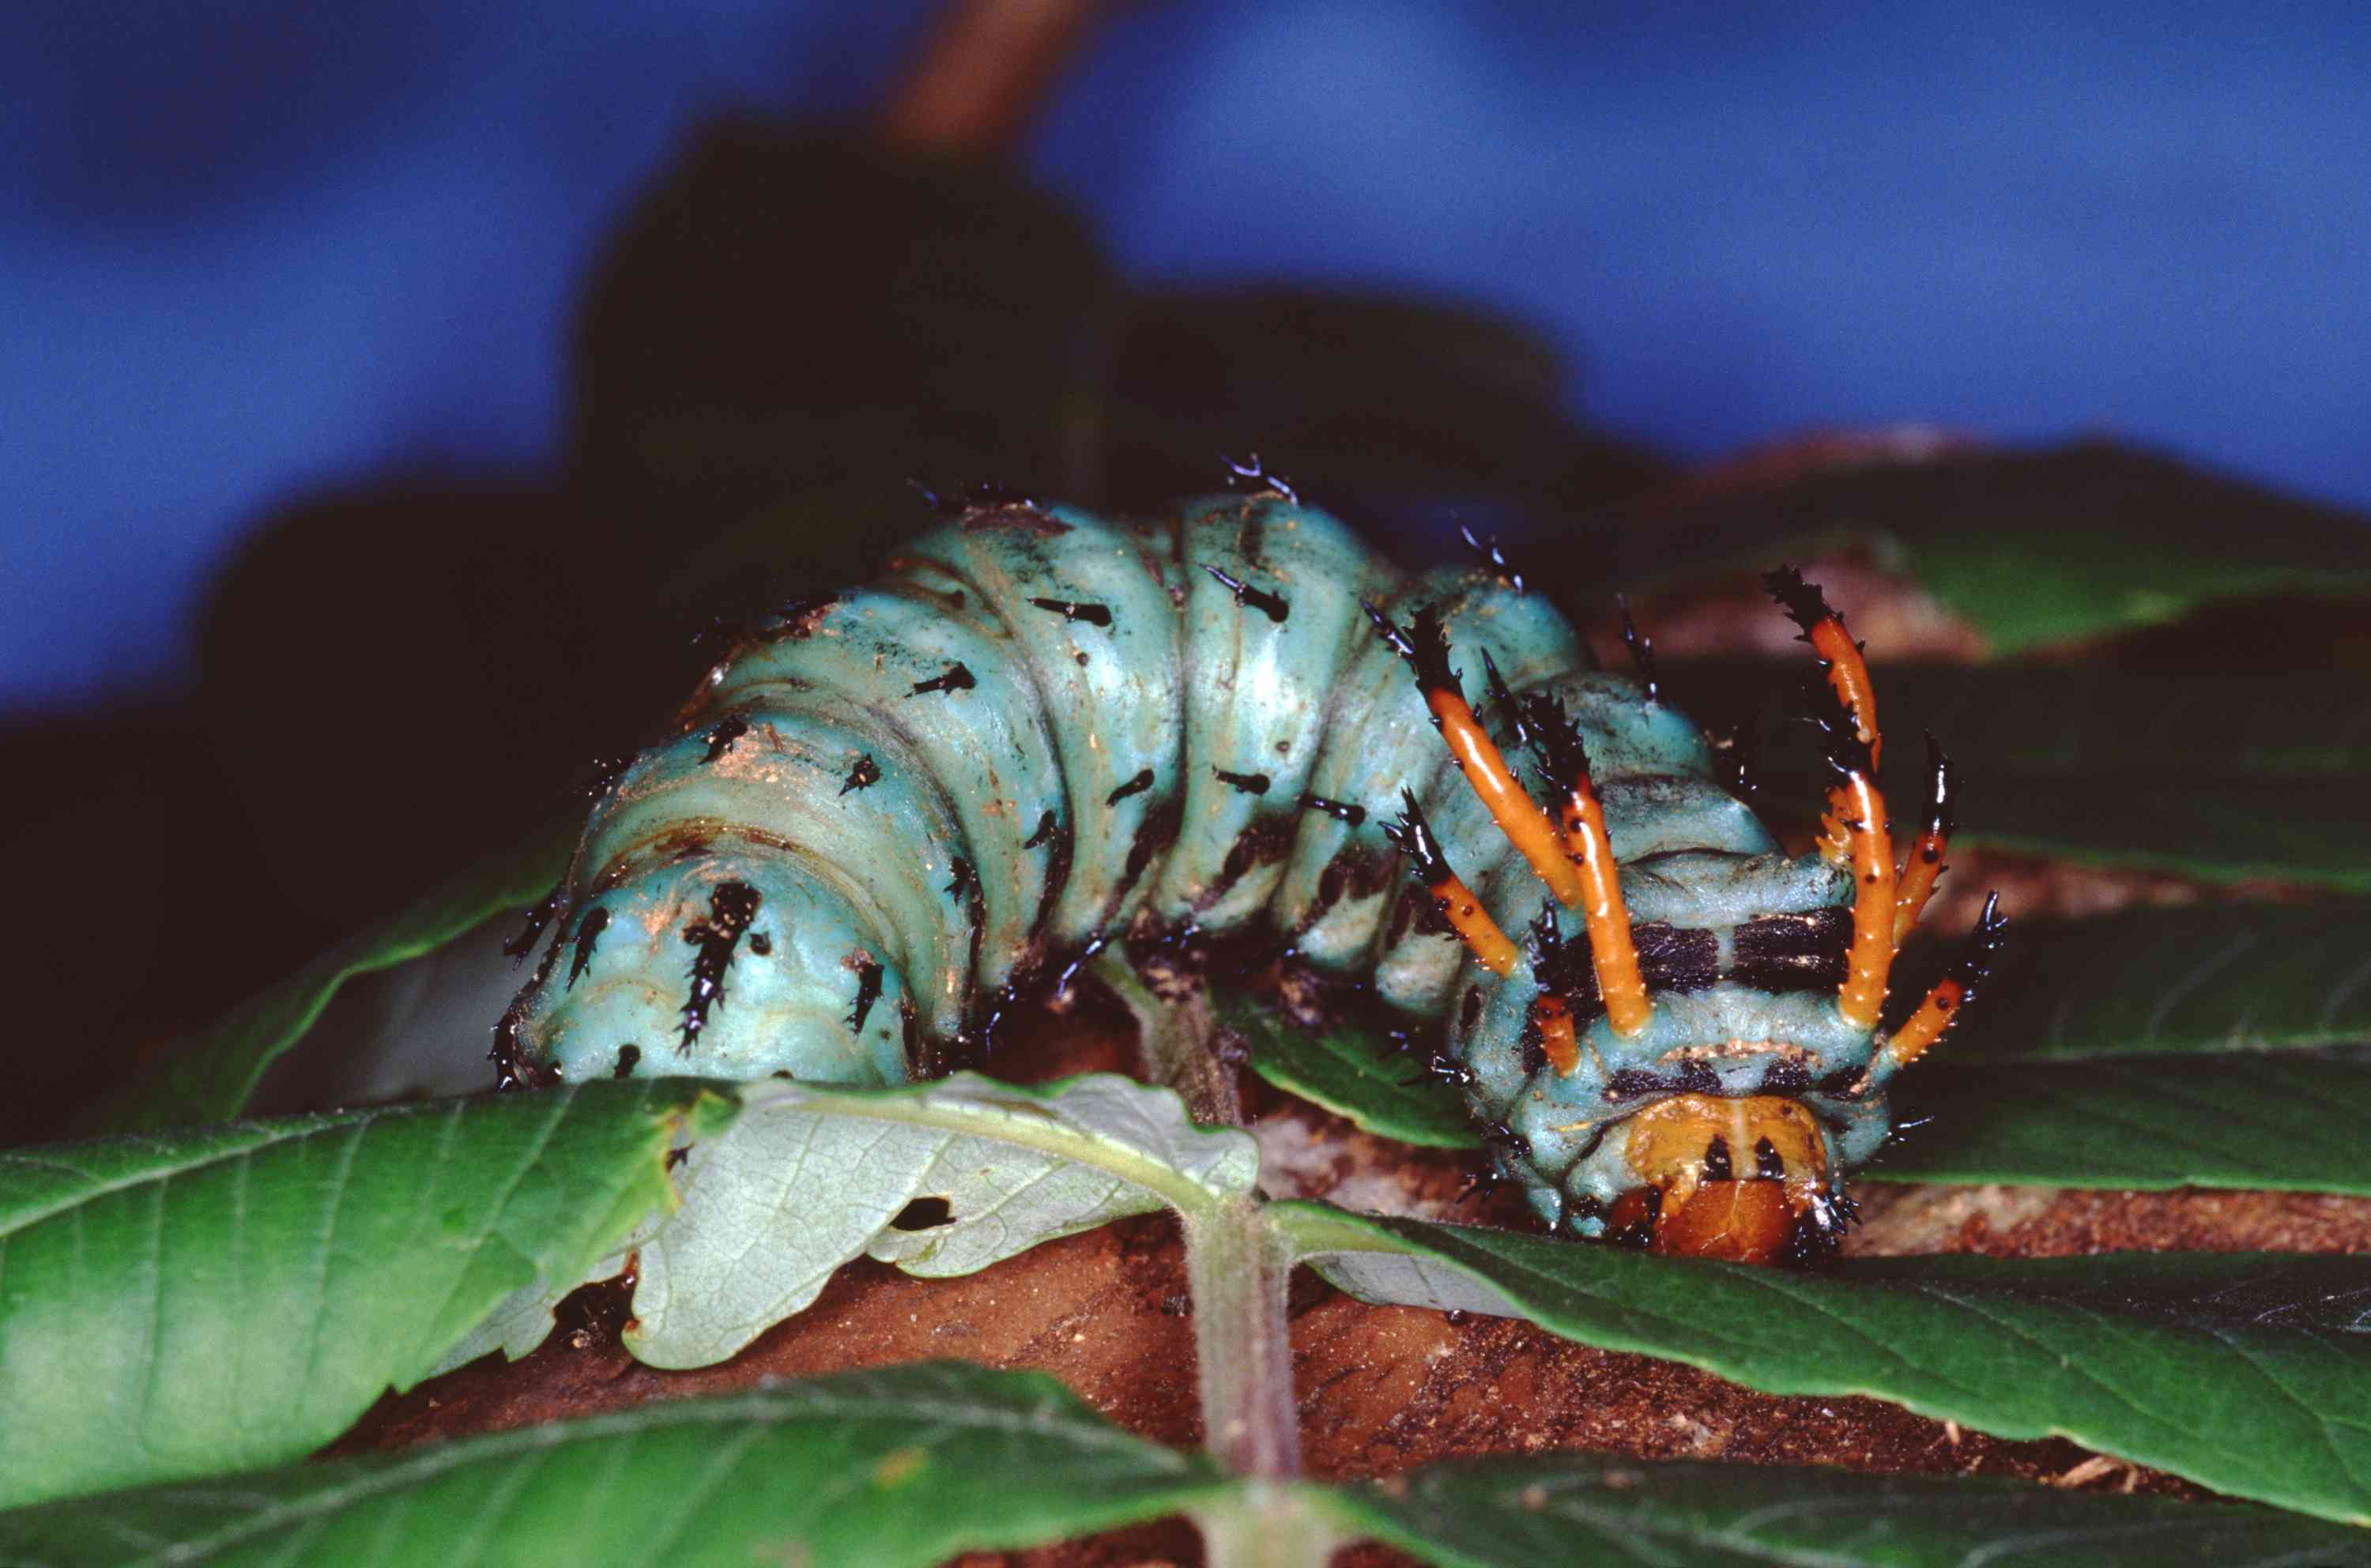 Green and black hickory horned devil caterpillar with orange/red spikes on a green leaf